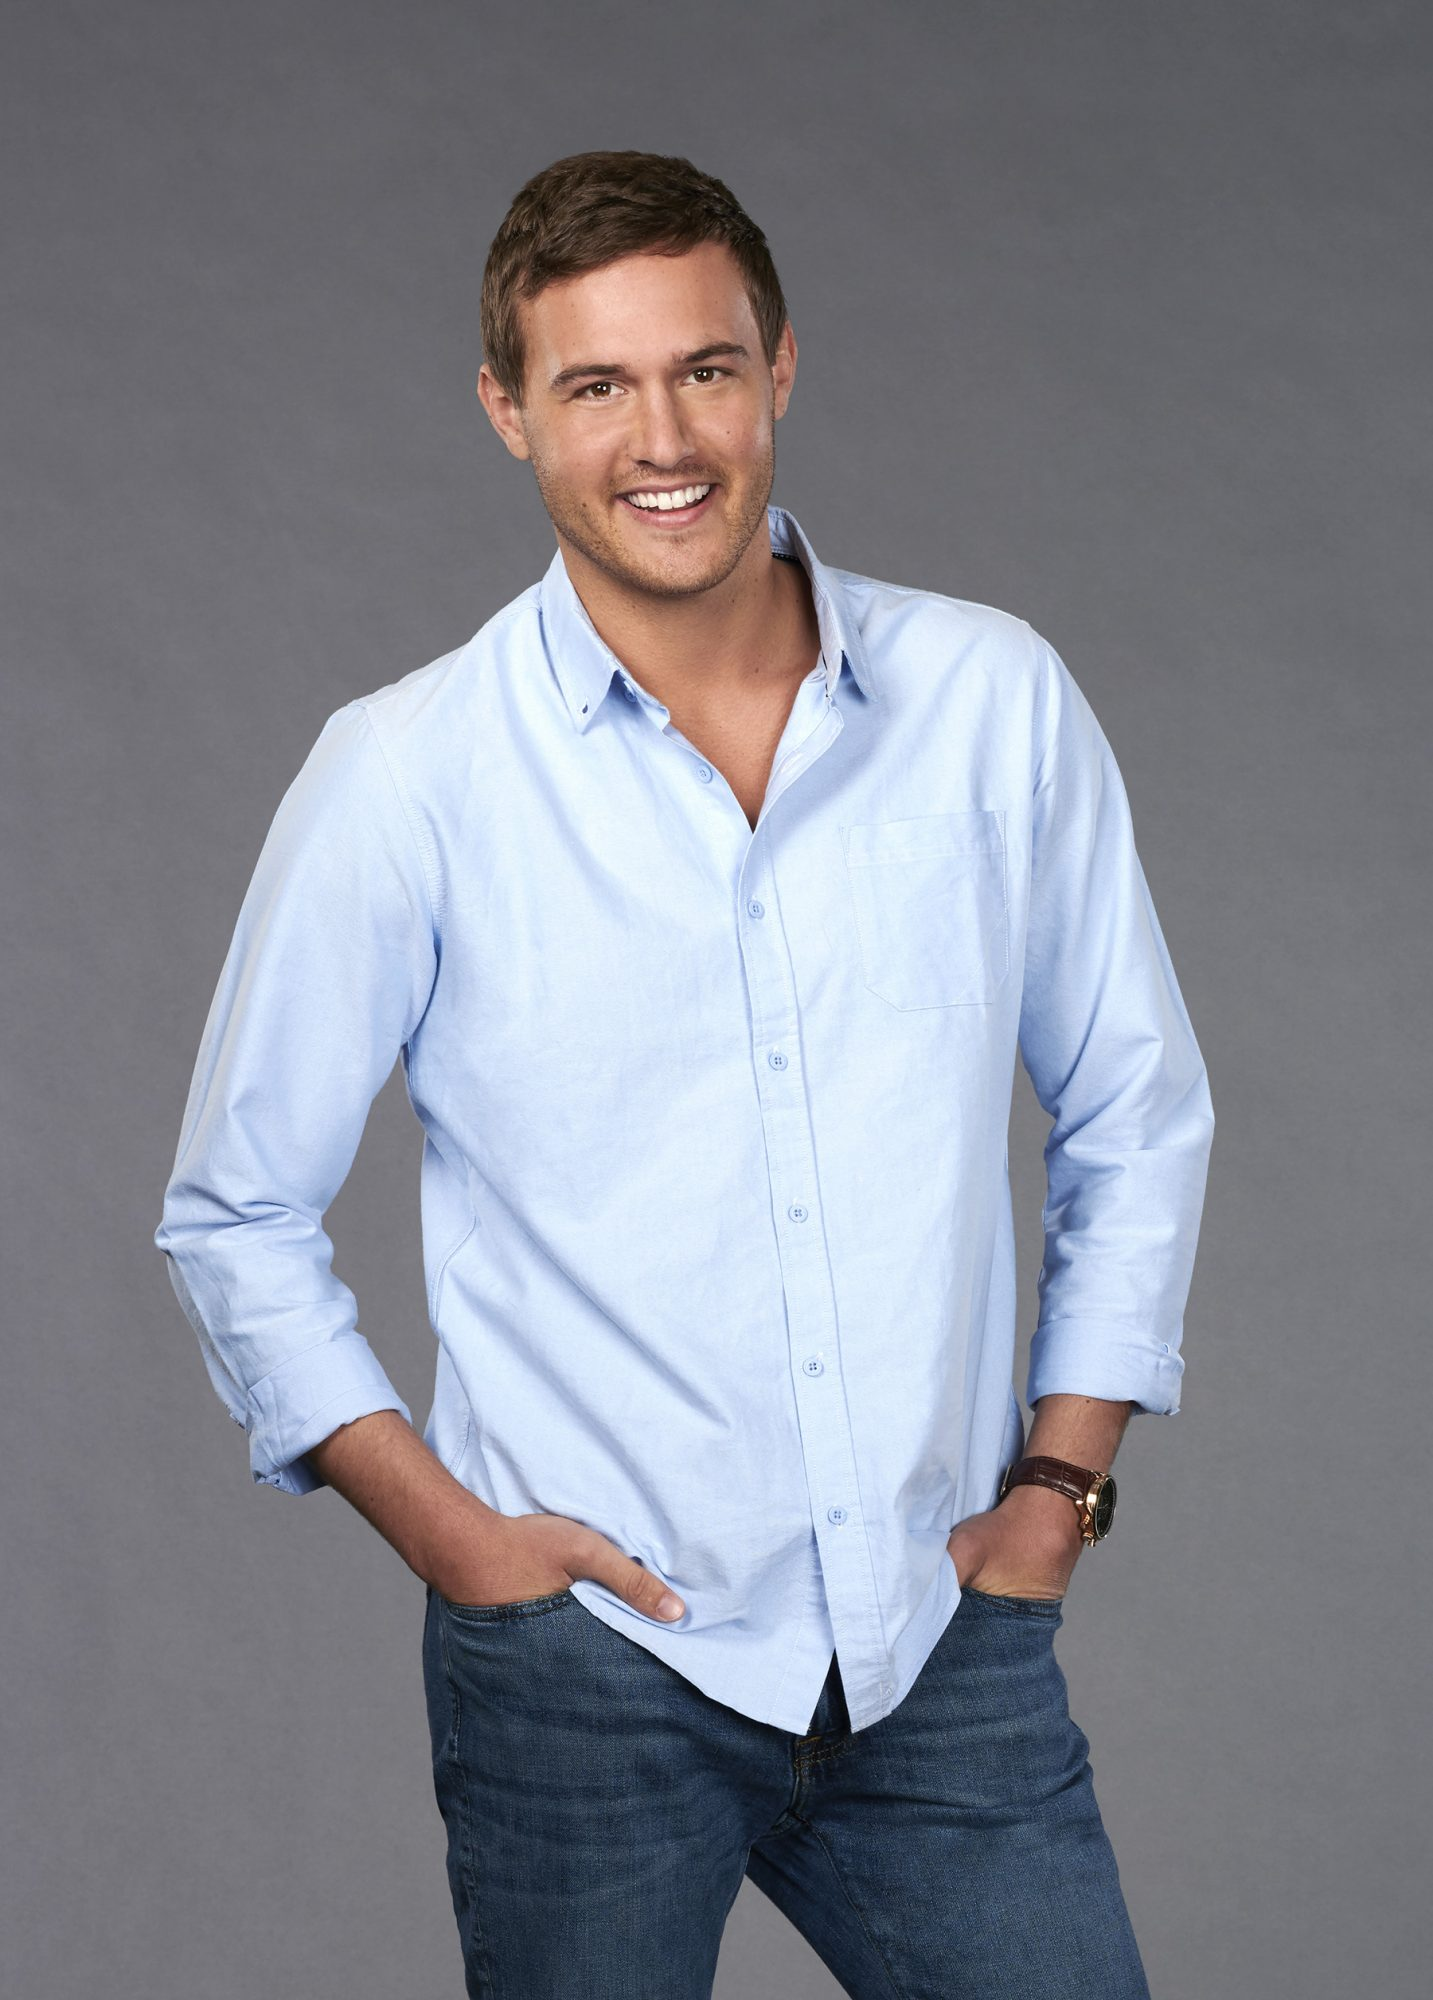 "THE BACHELORETTE - Hannah Brown caught the eye of Colton Underwood early on during the 23rd season of ""The Bachelor,"" showing him, and all of America, what Alabama Hannah is made of - a fun country girl who is unapologetically herself. After being sent home unexpectedly, Hannah took the time to reflect on her breakup, gaining a powerful understanding of her desire to be deeply and fiercely loved. Now, with a newfound sense of self and a little southern charm, she is more ready than ever to find her true love on the milestone 15th season of ""The Bachelorette."" (ABC/Ed Herrera) PETER"